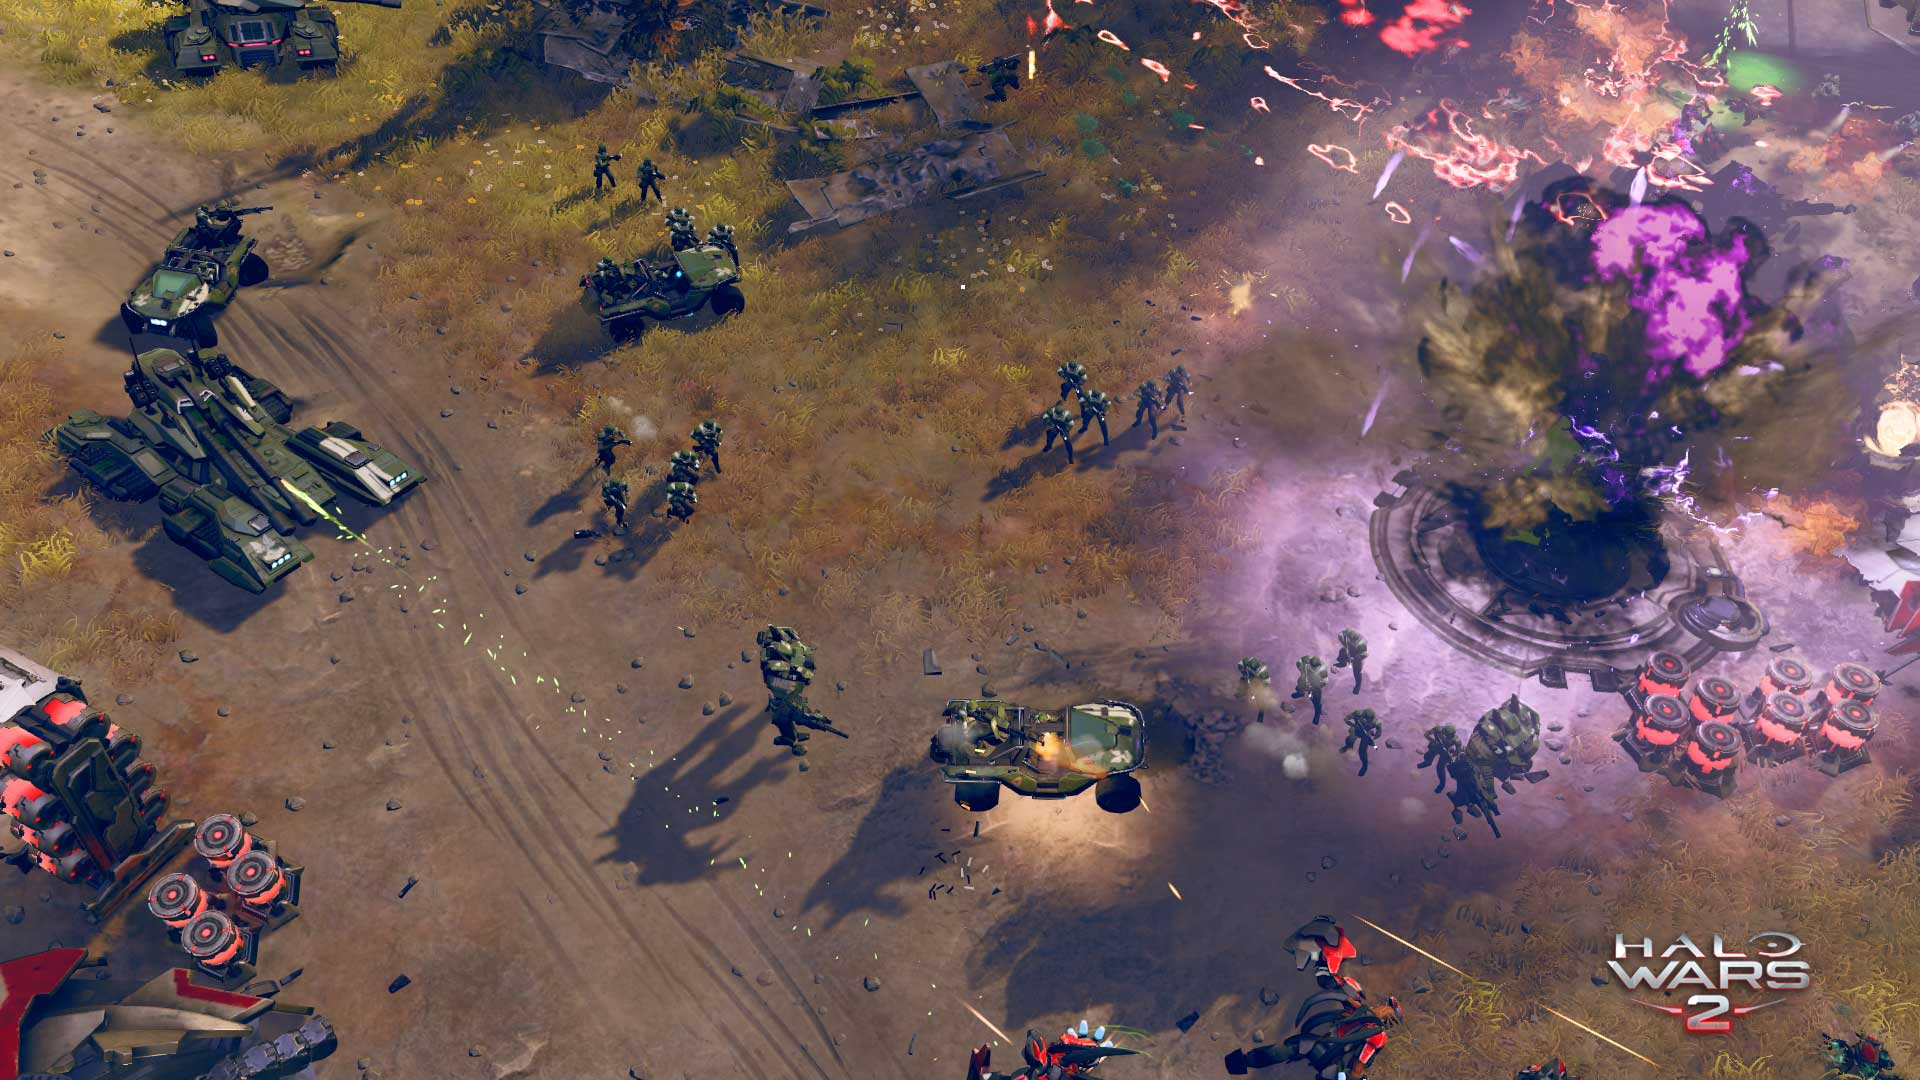 Large scale battle in Halo Wars 2